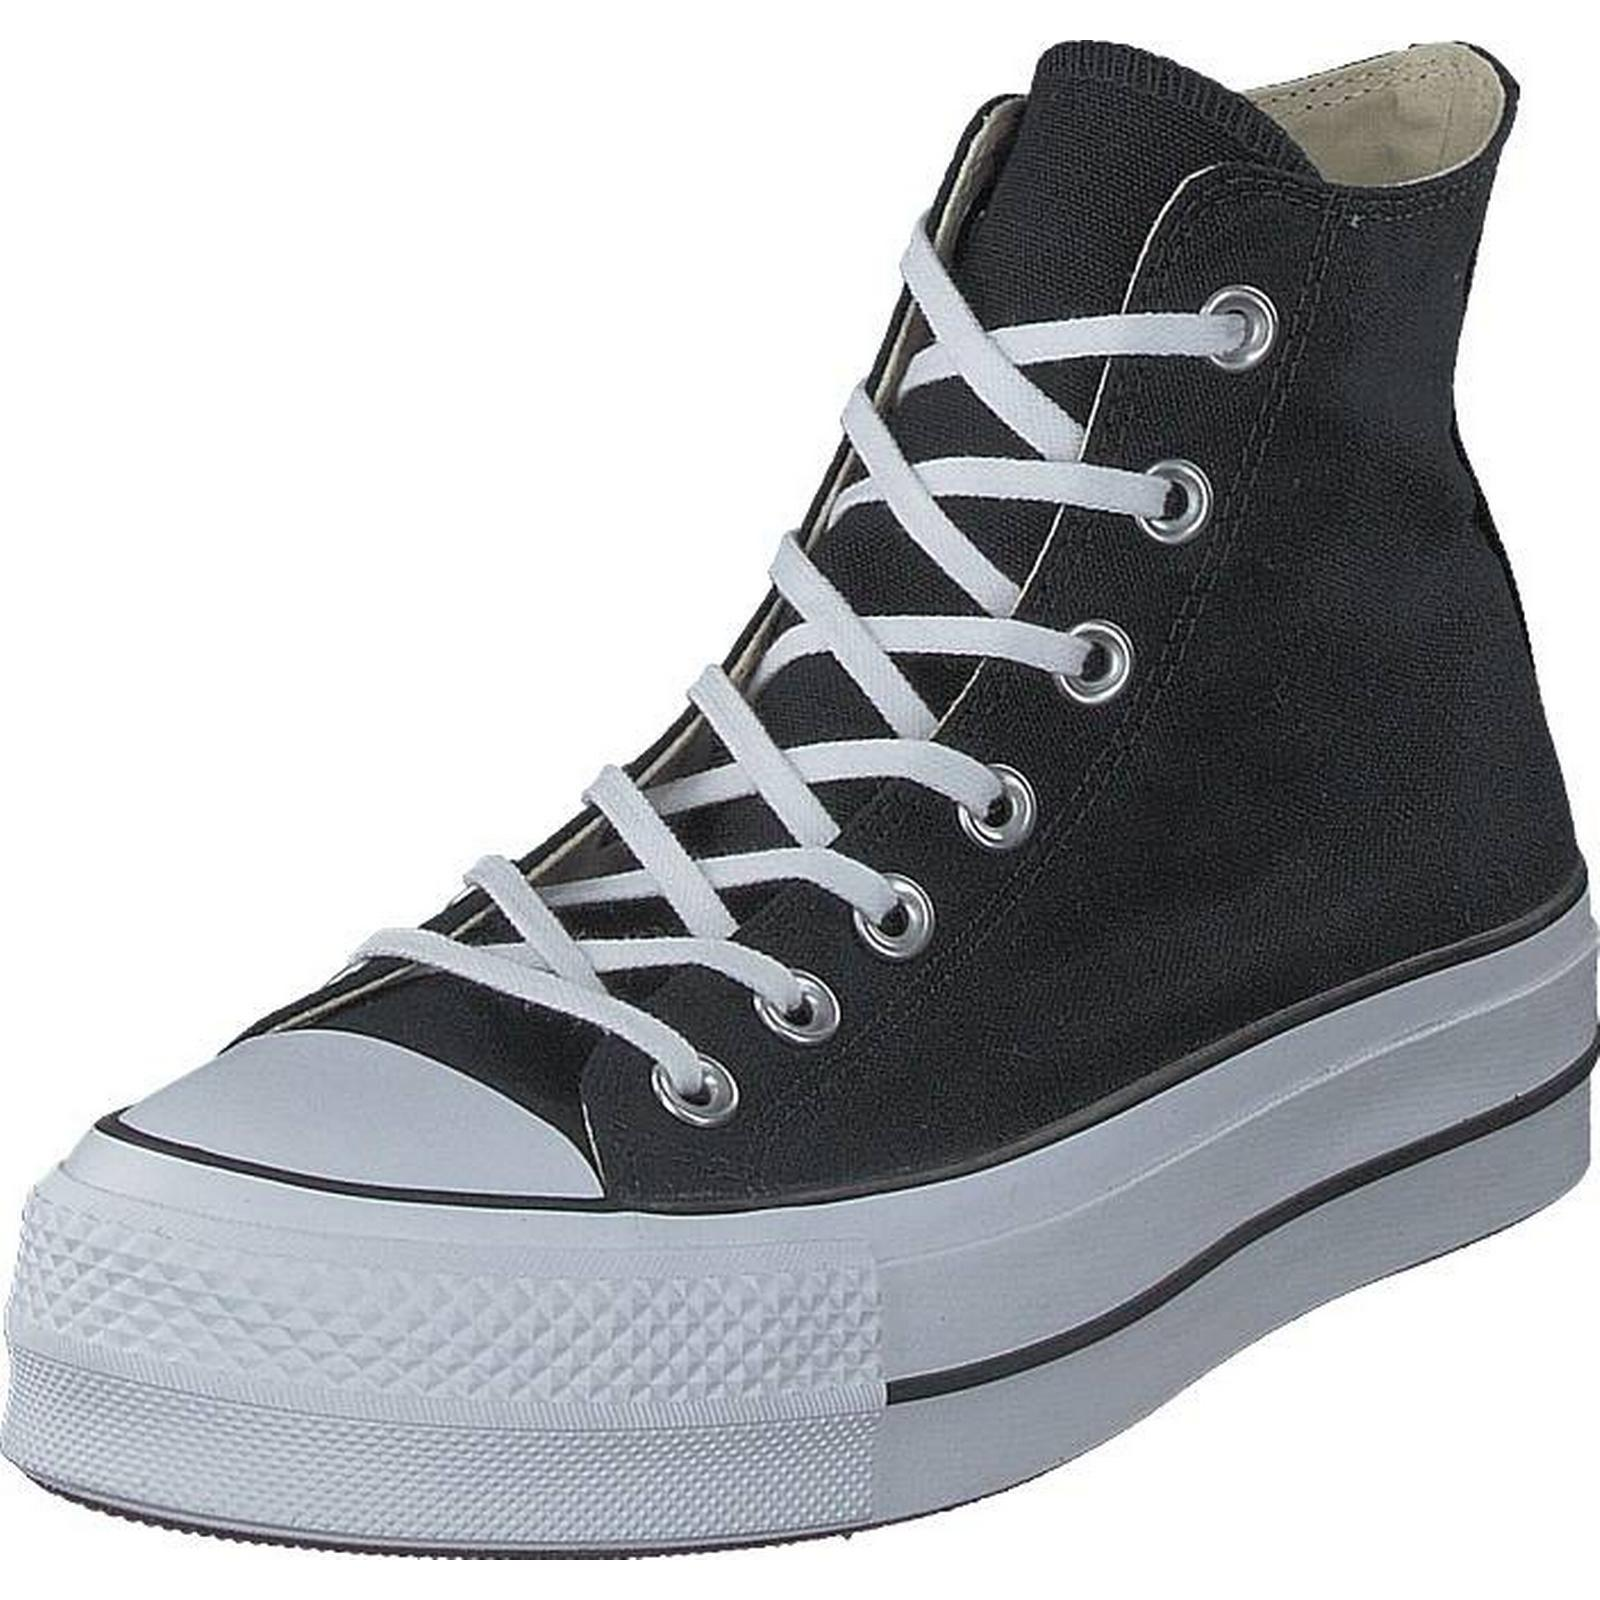 Converse Chuck Taylor All Star Star All Lift Black/white/white, Shoes, Trainers & Sport Shoes , High-top Trainers, Black, Female, 41 ccf304